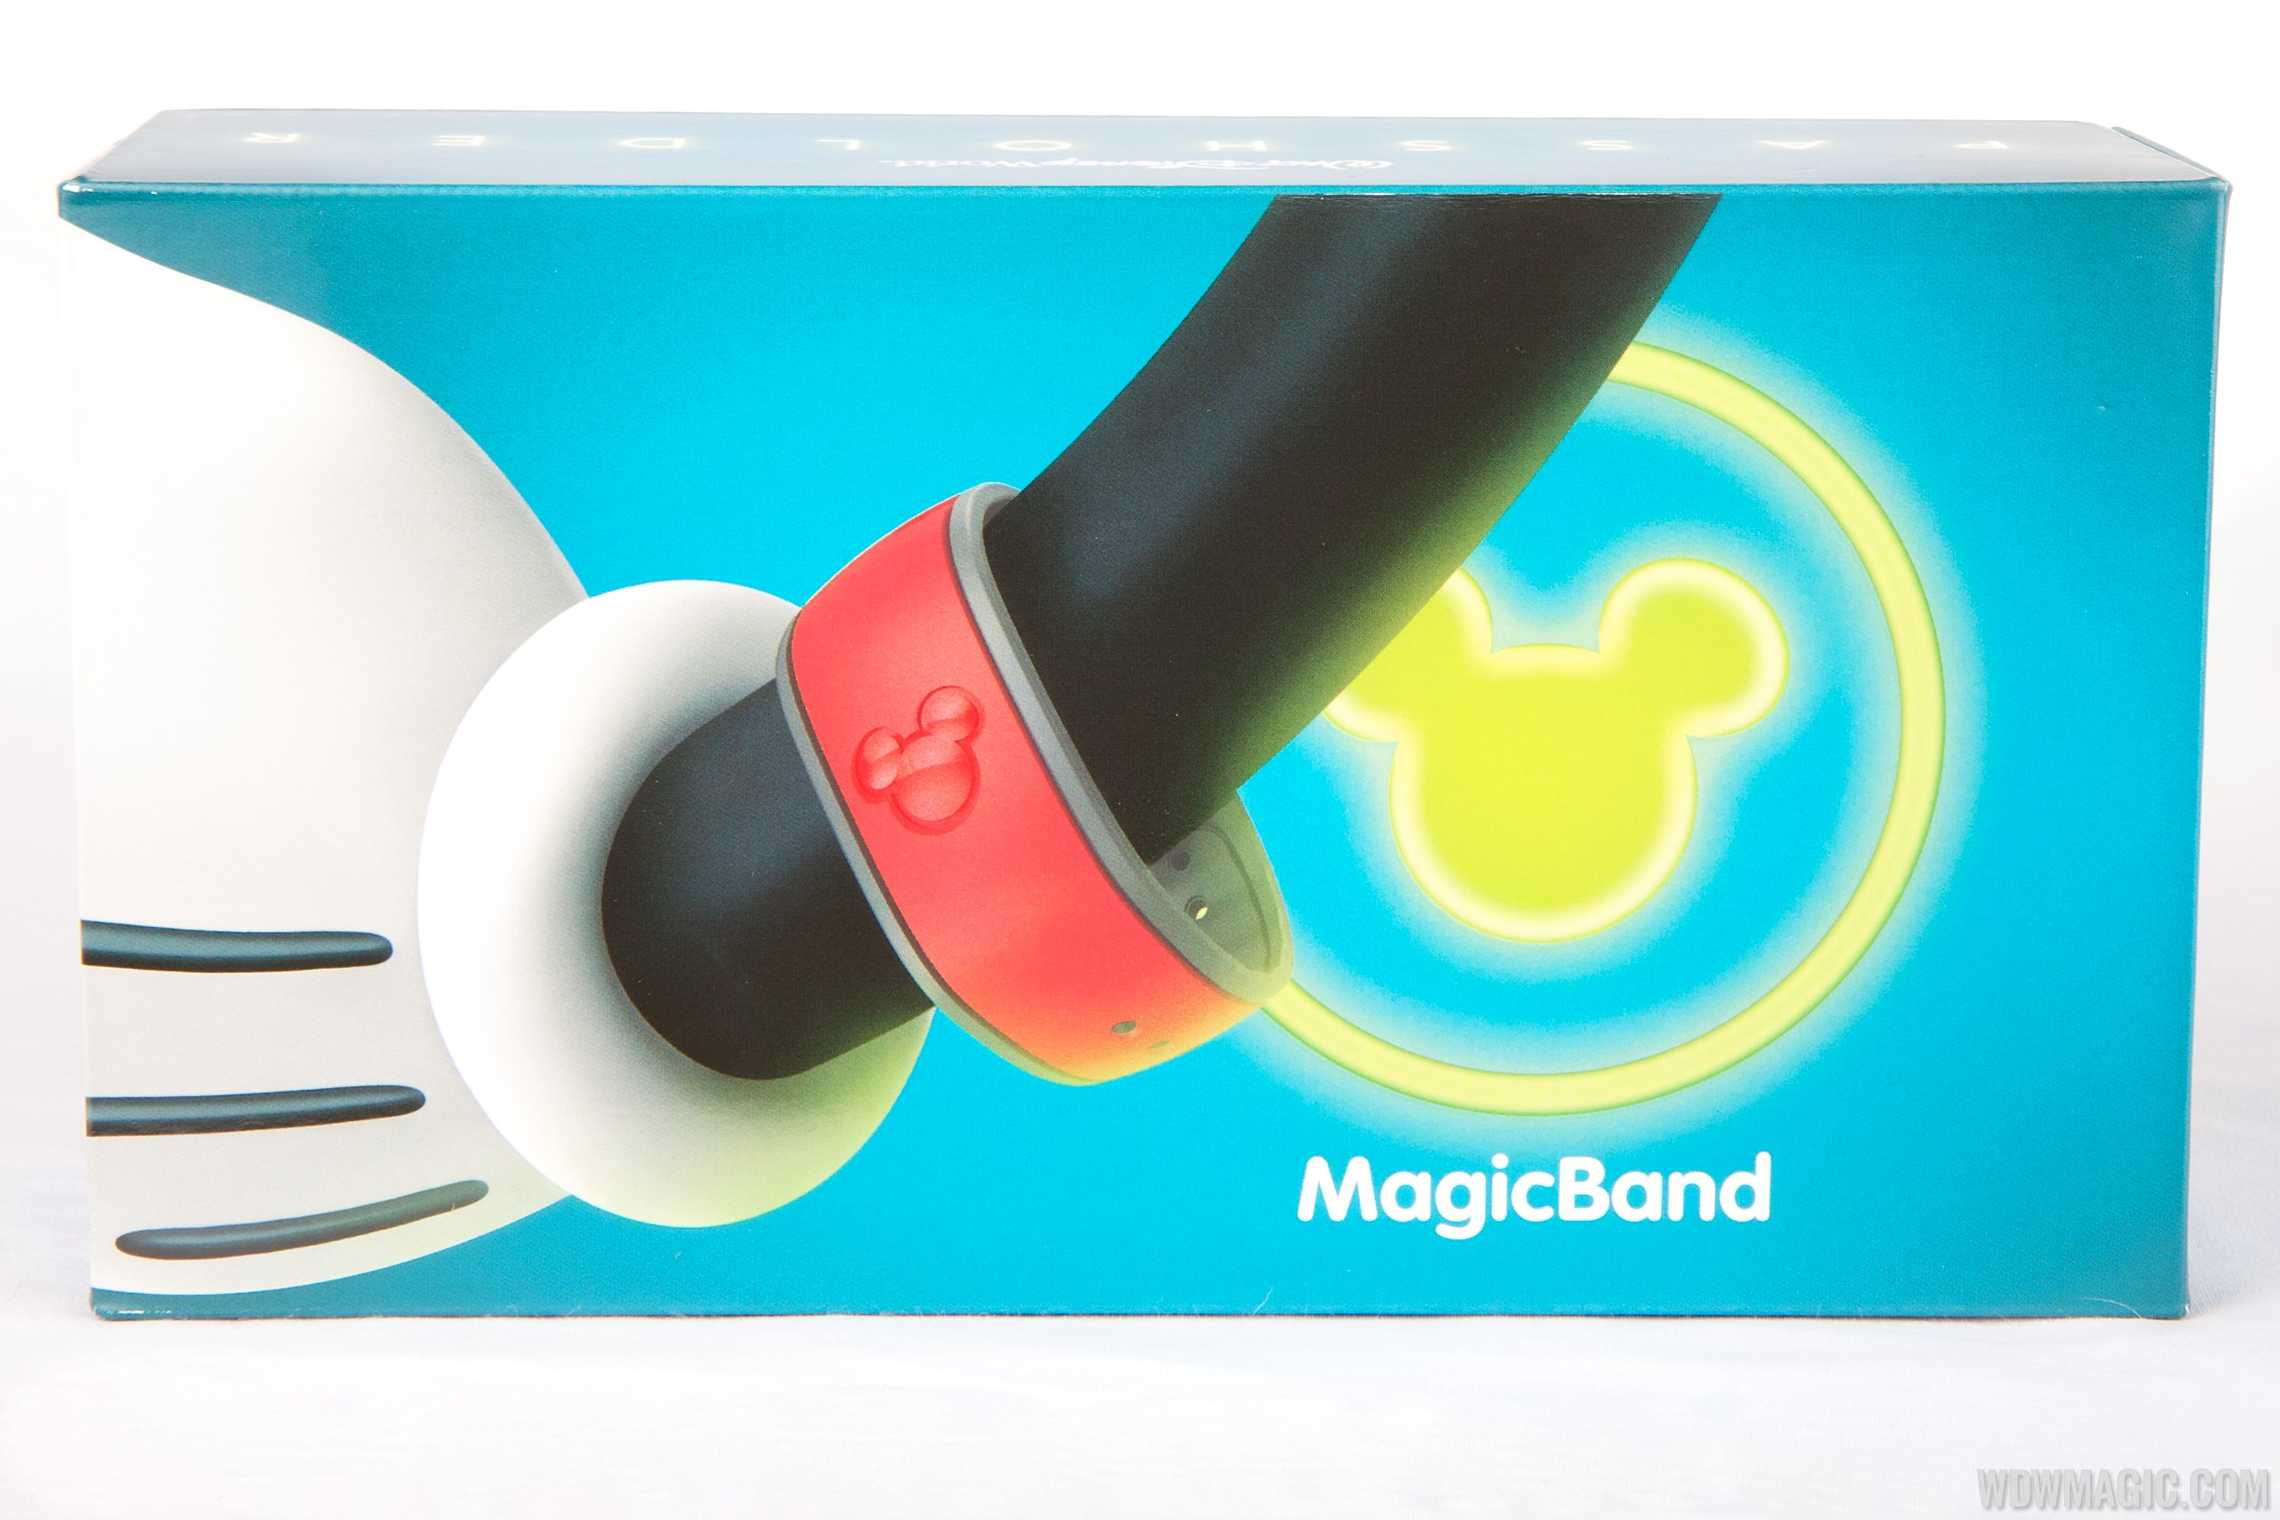 MagicBand passholder box top view